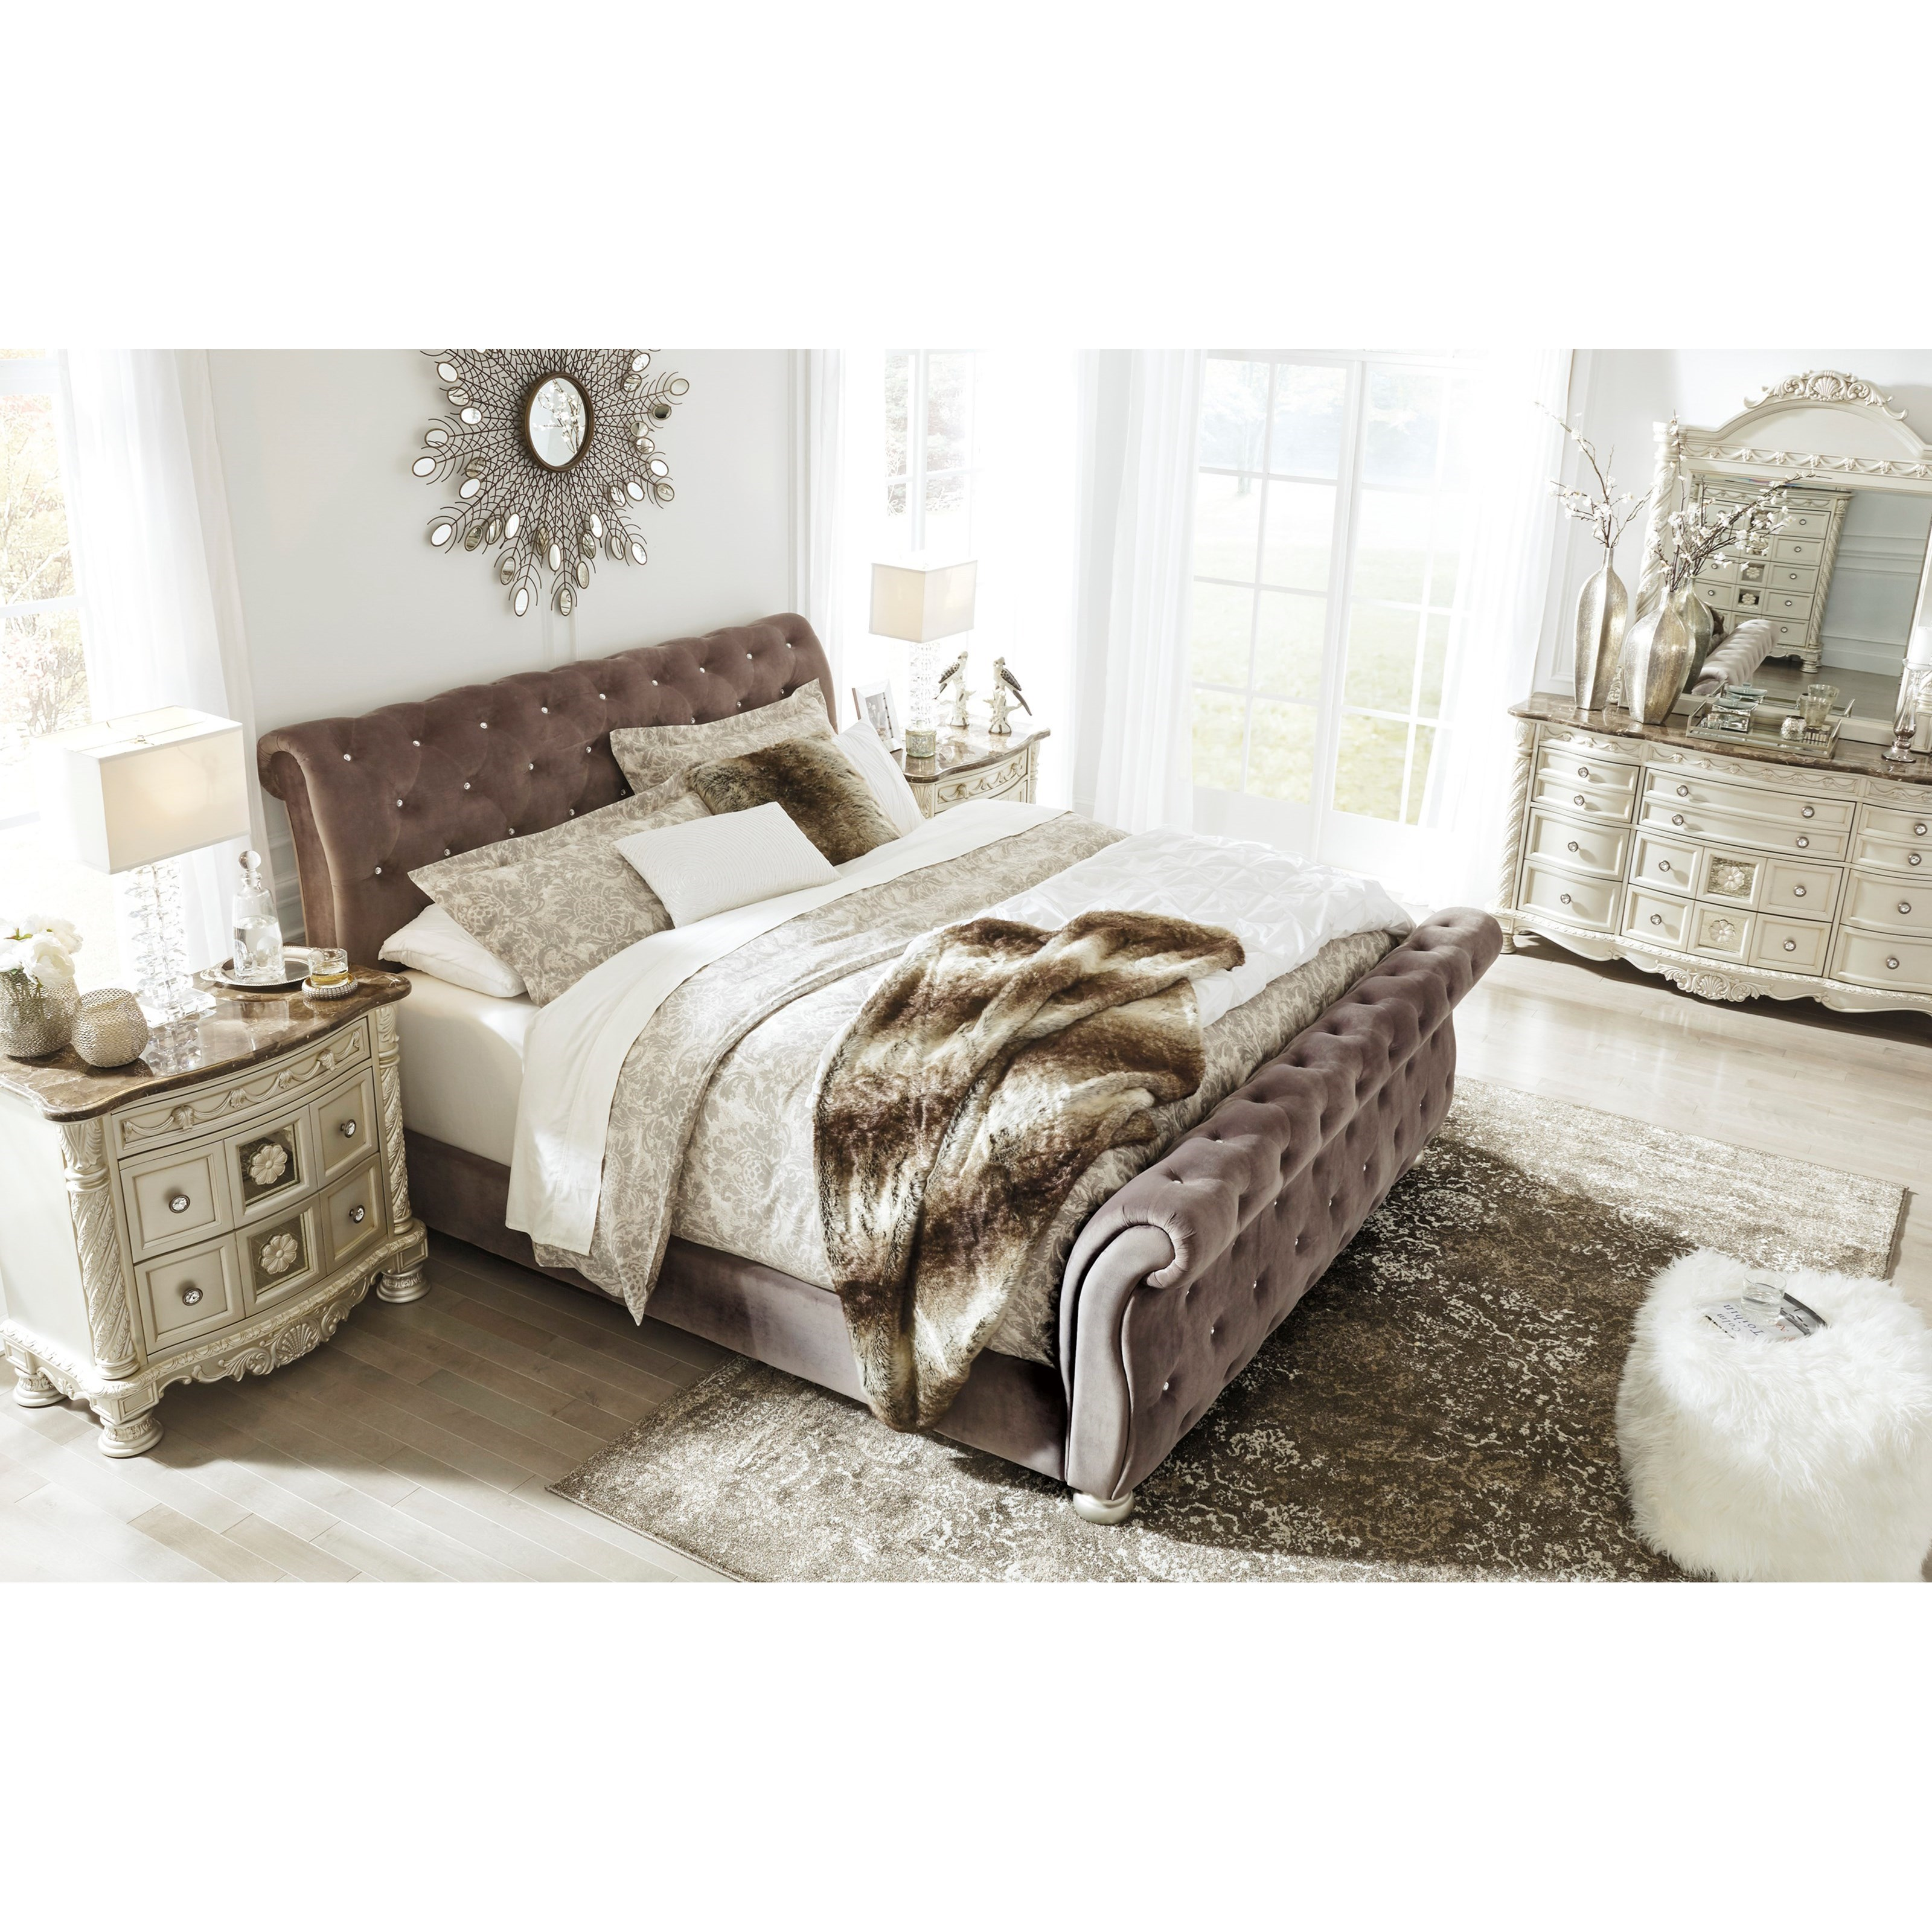 waverly furniture taupe with king bed tufted fbx max model upholstered button mtl models obj sleigh